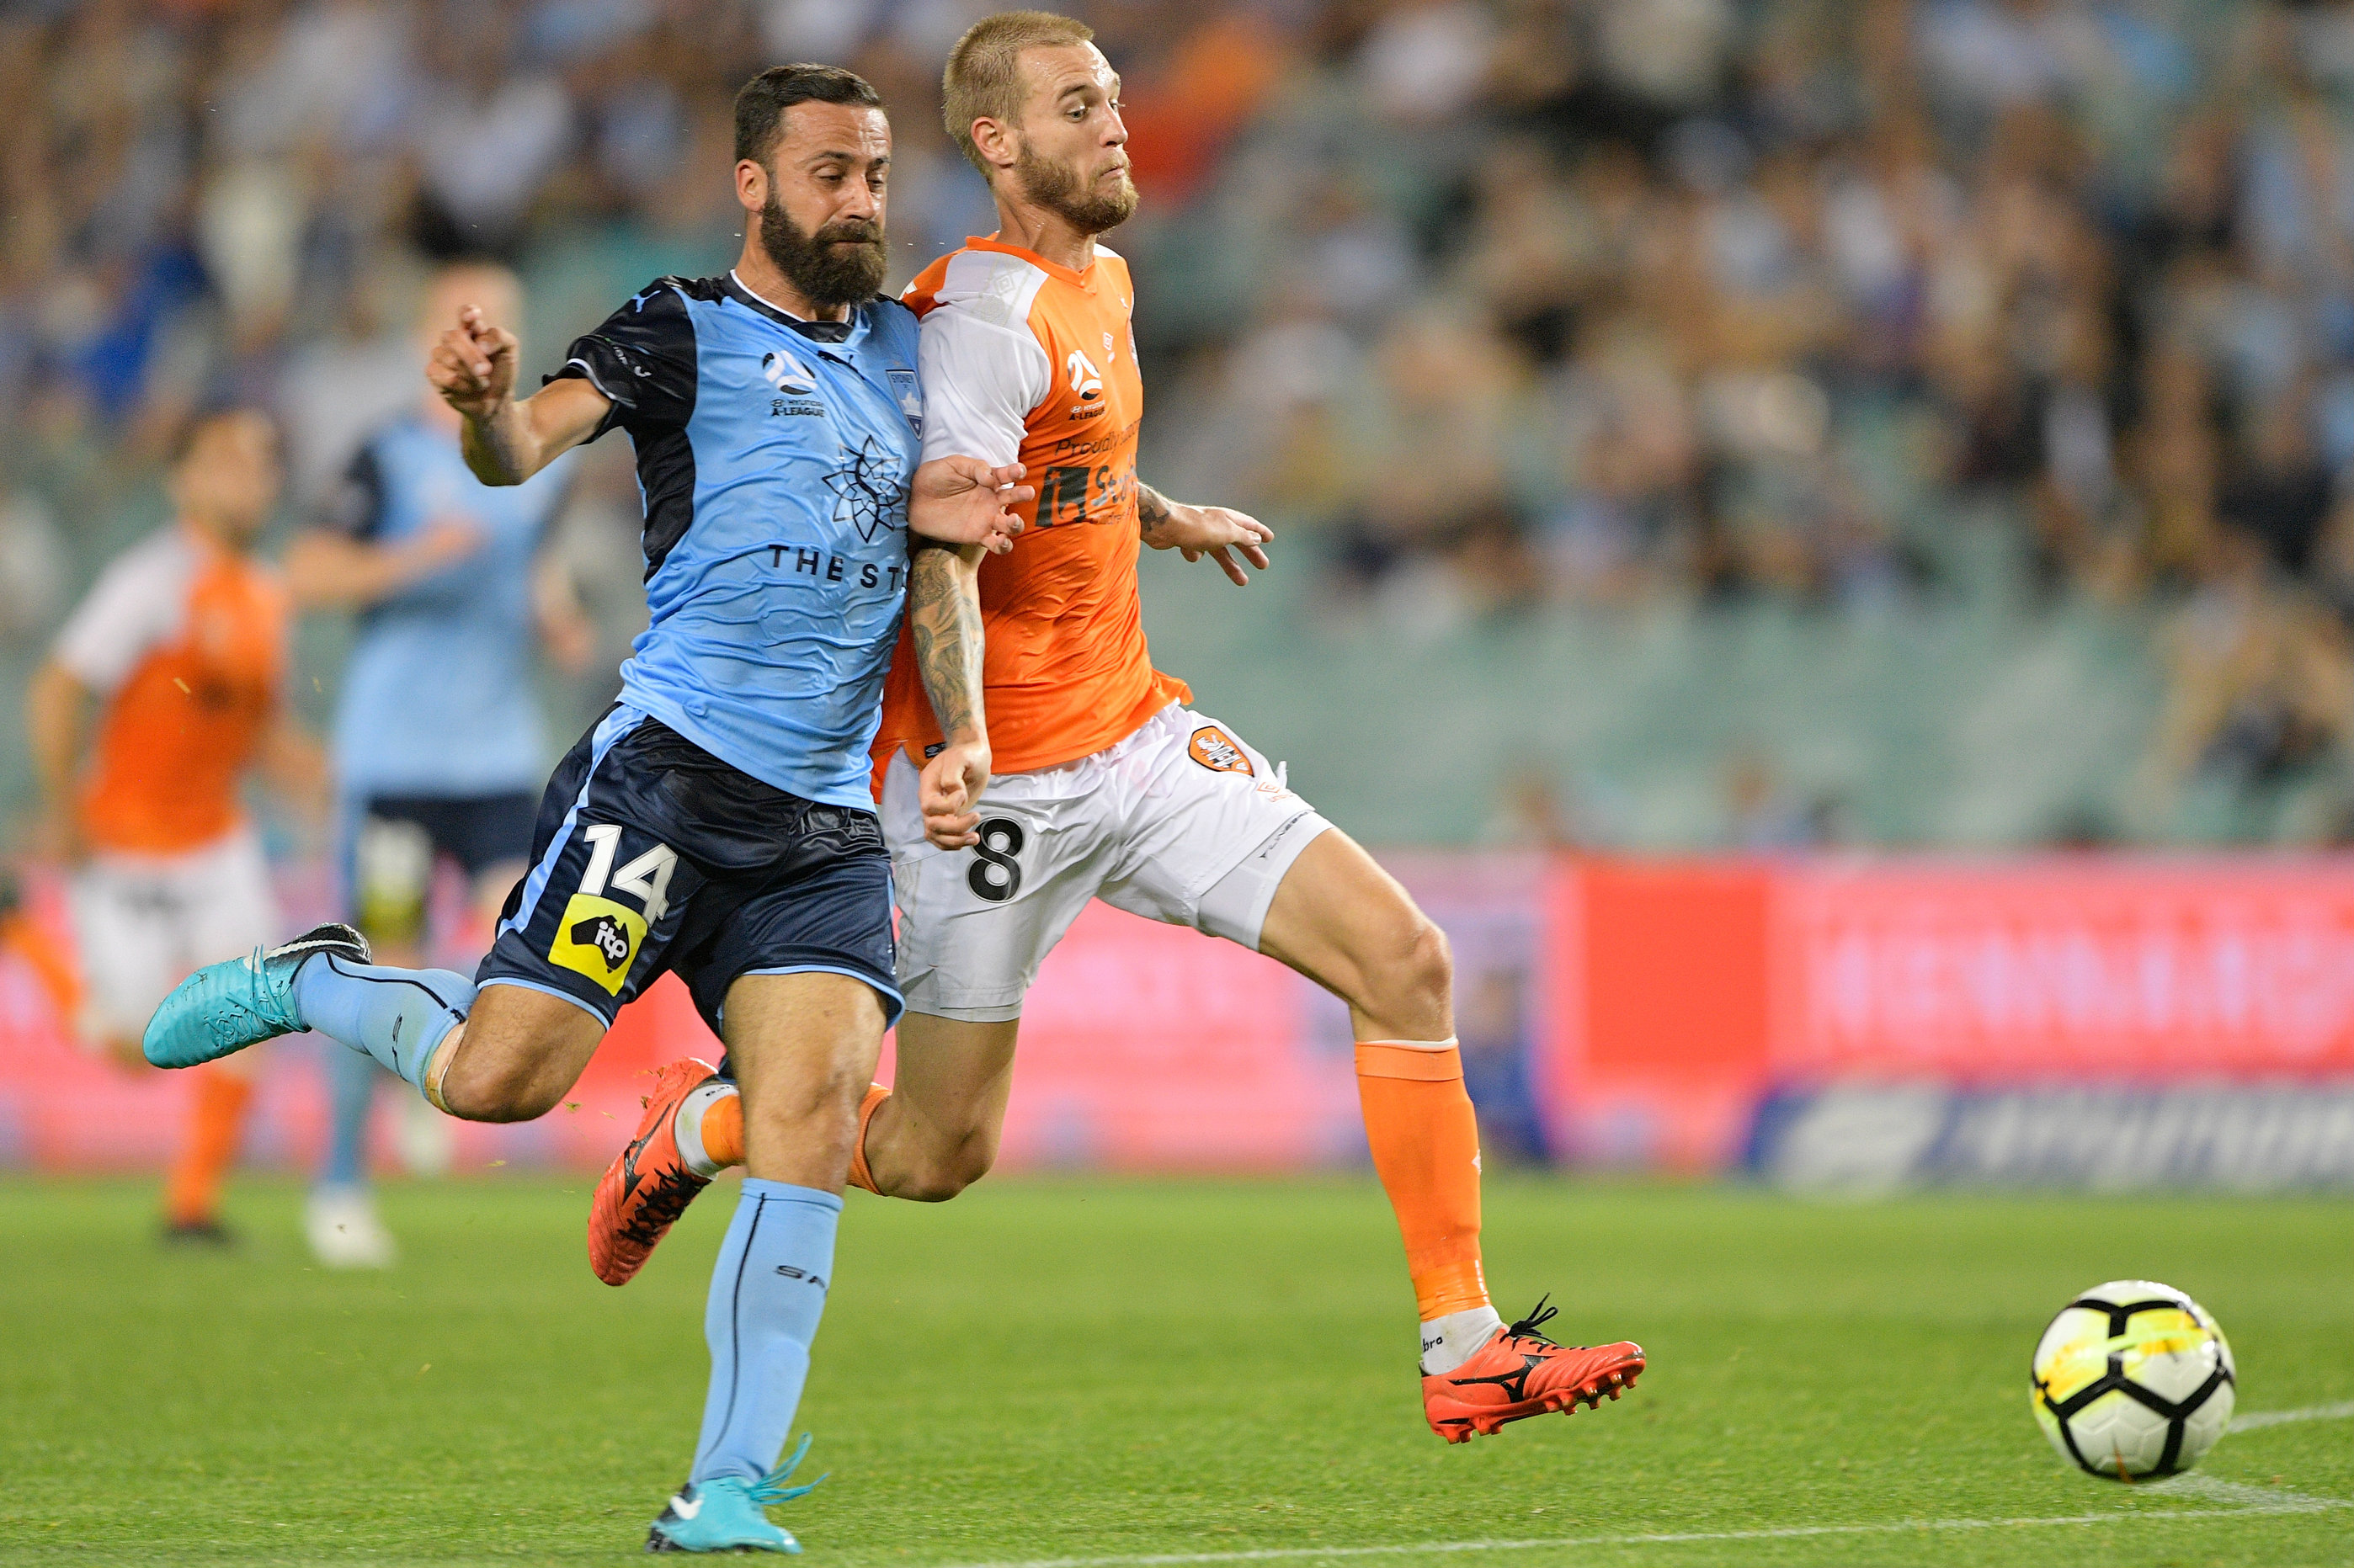 Jacob Pepper in a battle for the ball with Sydney FC skipper Alex Brosque.